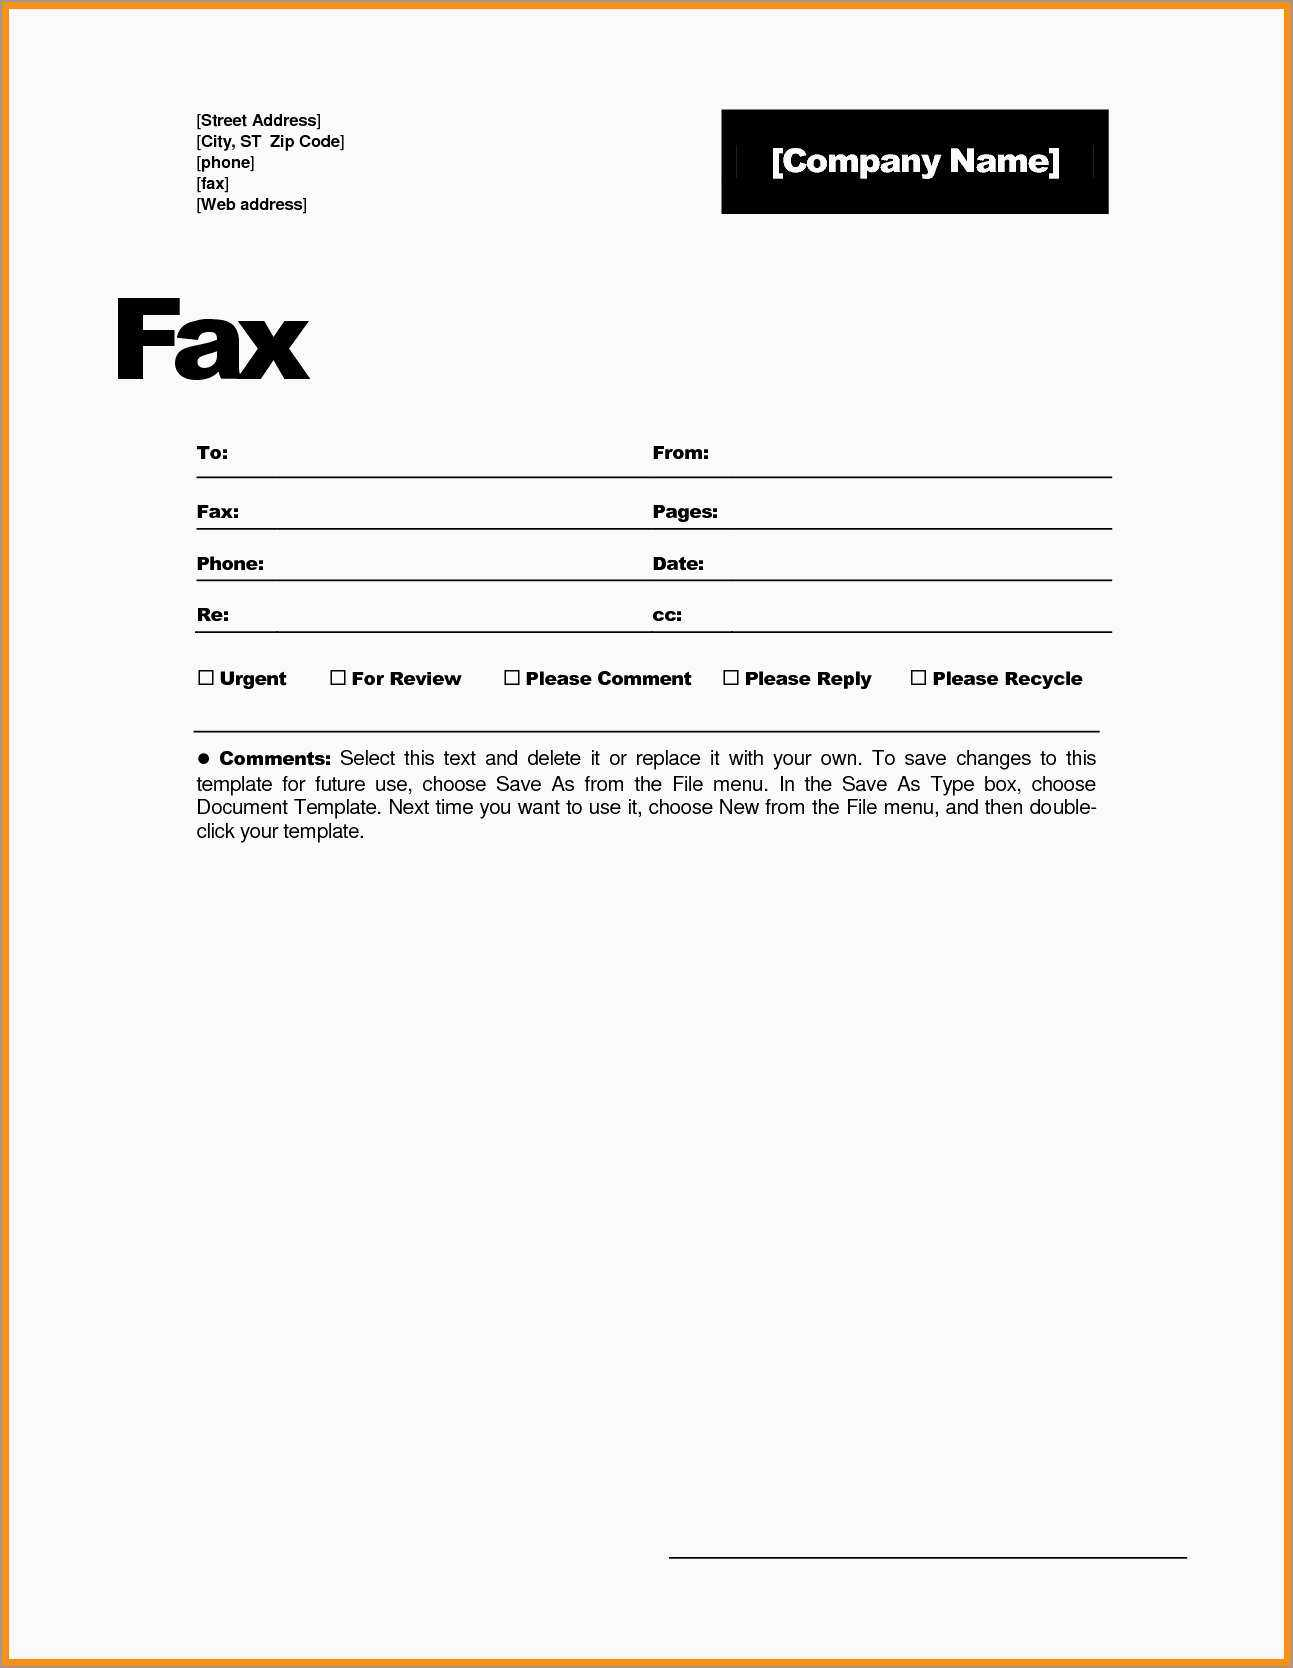 030 Fax Cover Sheet Template Free Word Stupendous Ideas Page In Fax Template Word 2010